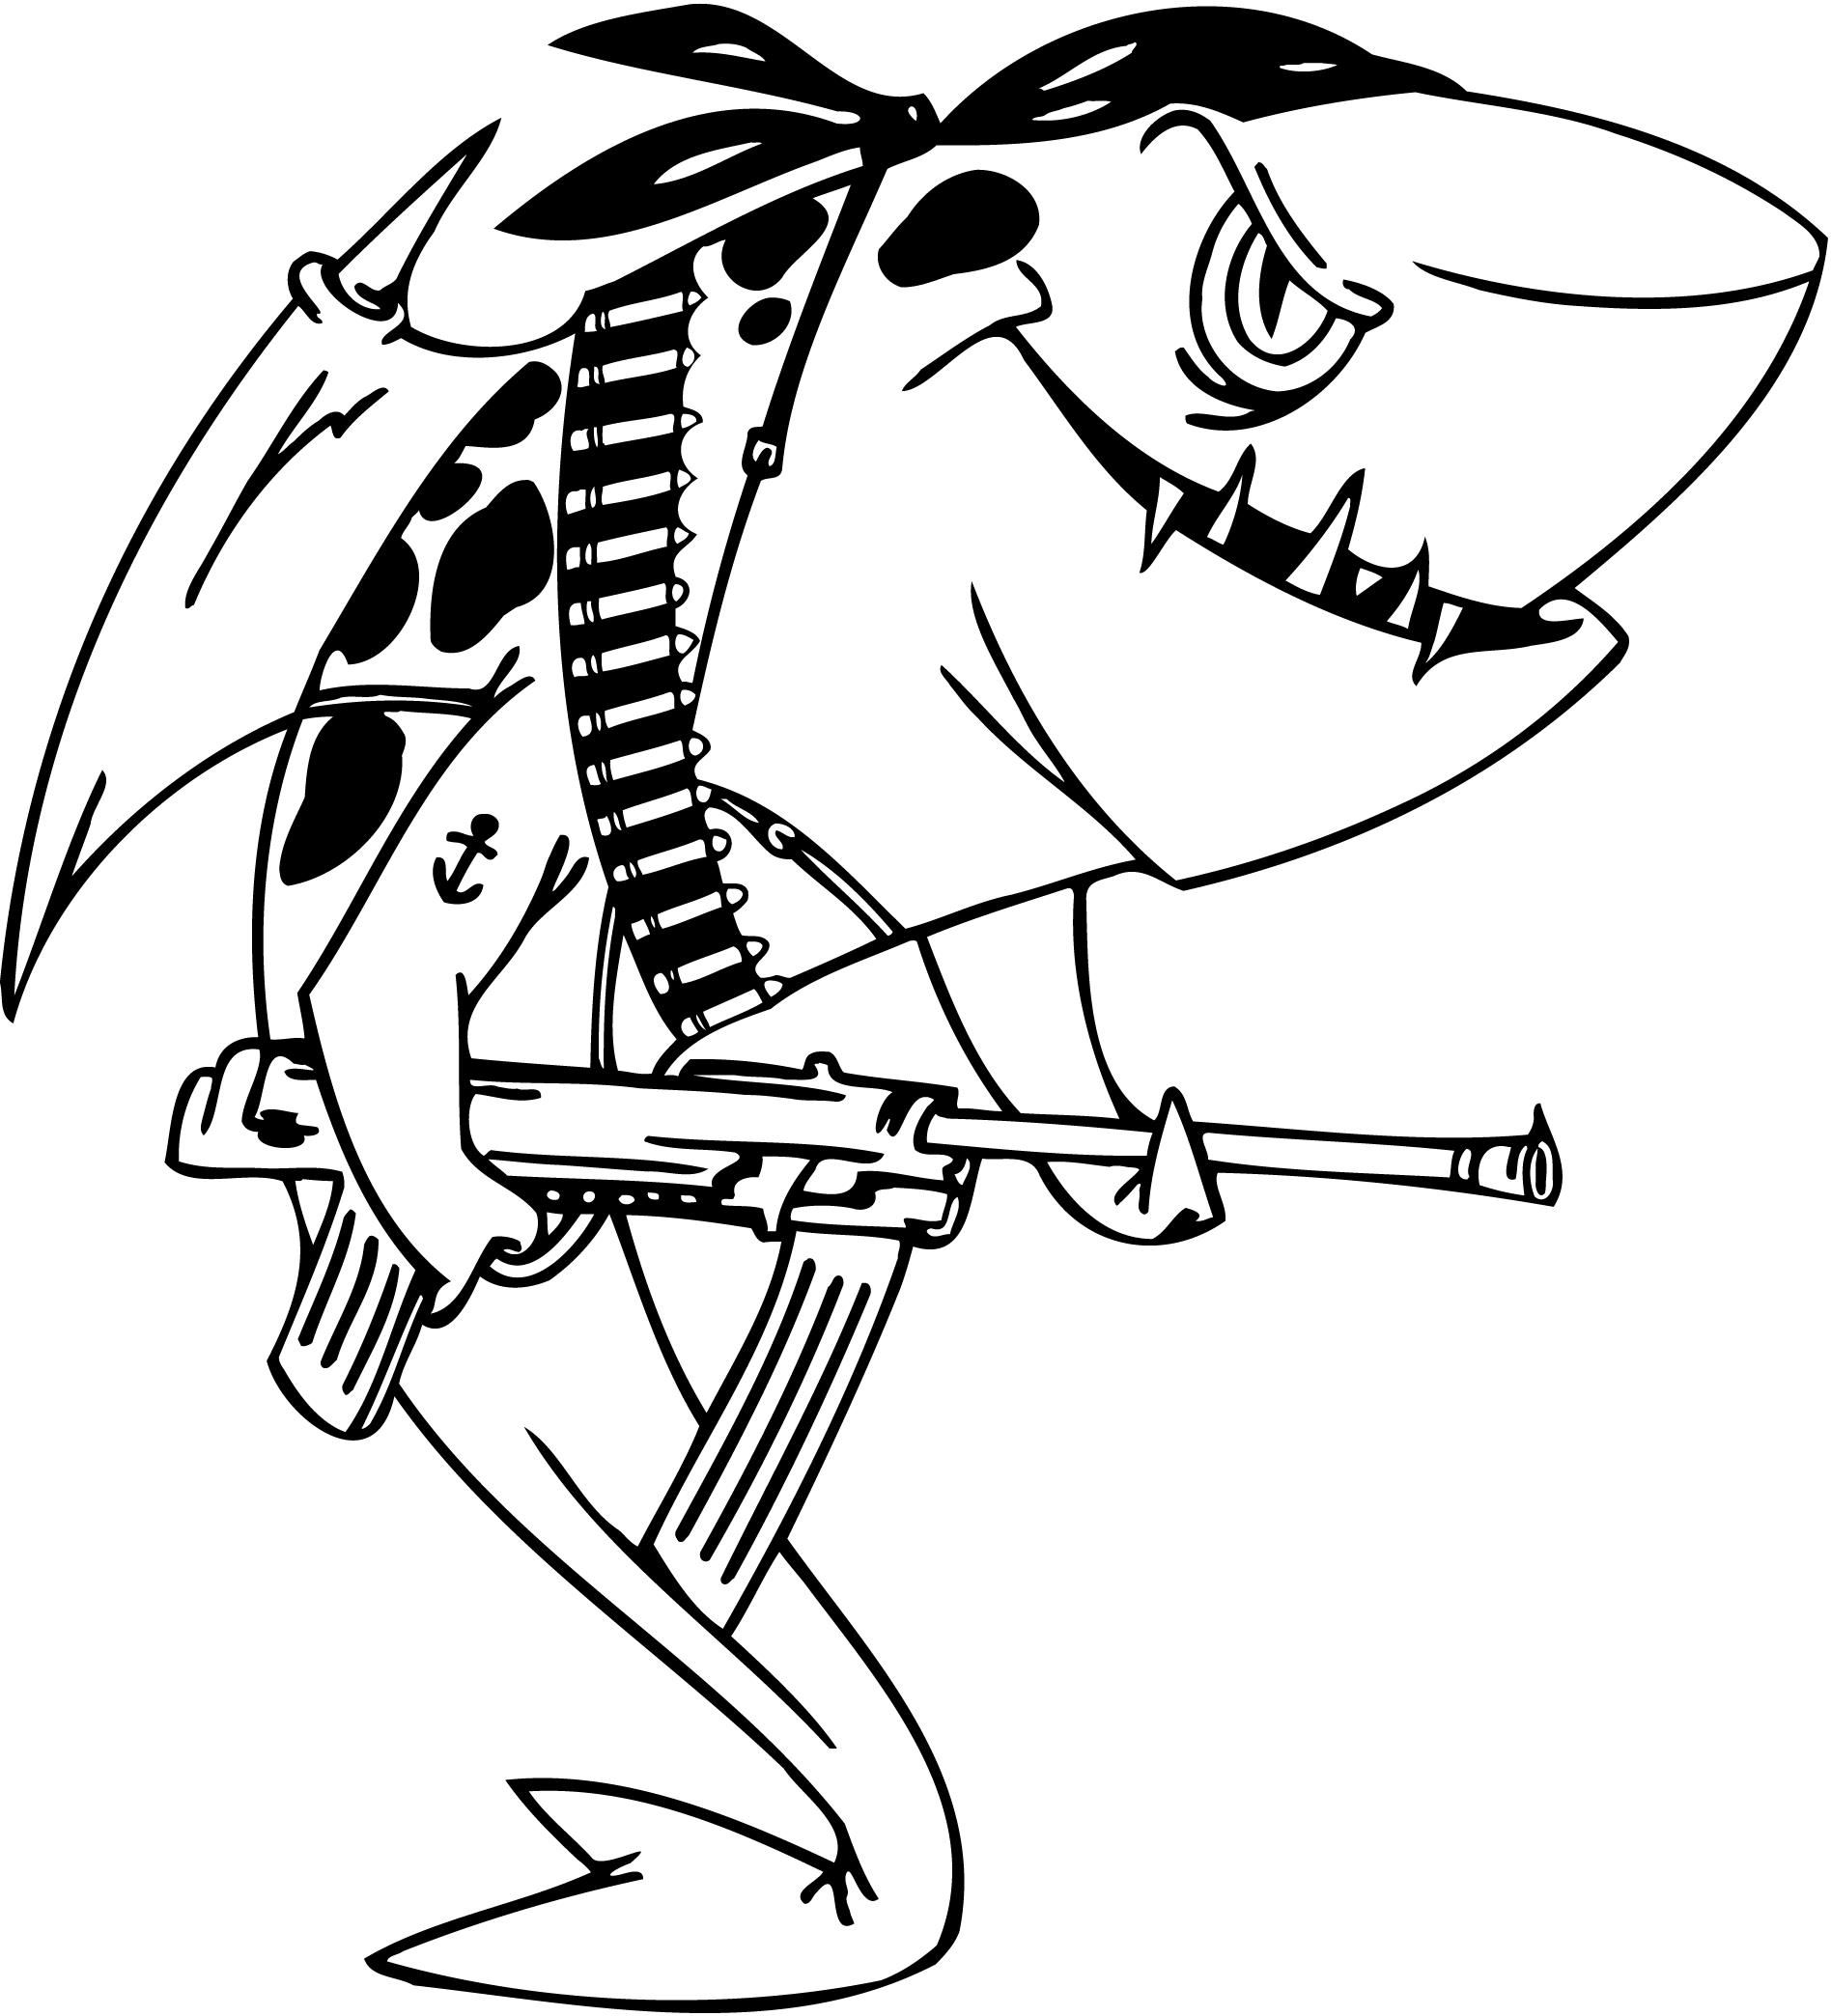 Tsmjra-In-Shark-Coloring-Pages.jpg (1896×2088) | cartoons 3 ...